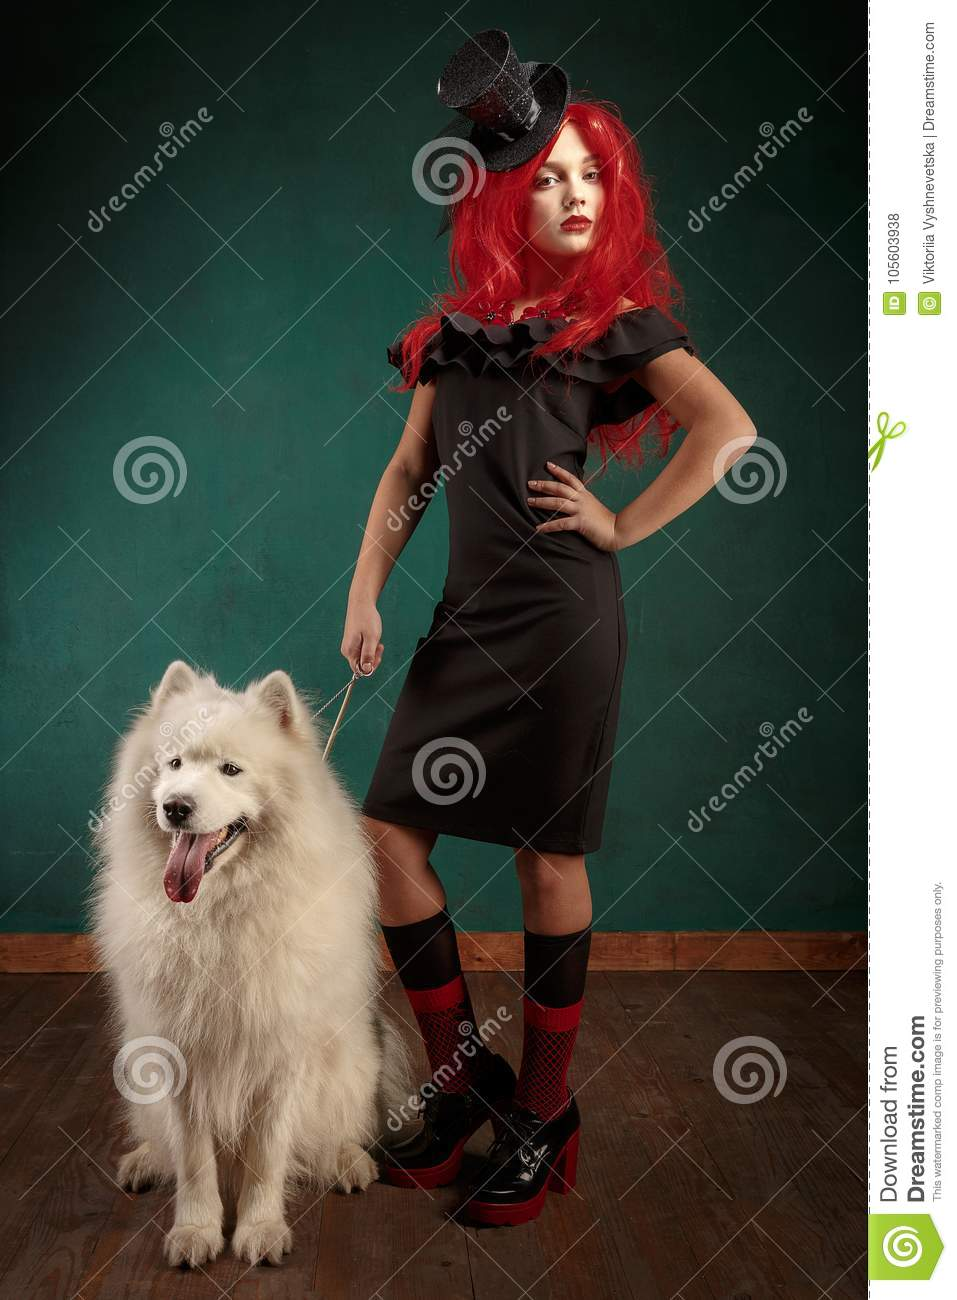 Winter dog holiday and Christmas. Girl in a black dress and with red hair with a pet in the studio. Christmas woman with